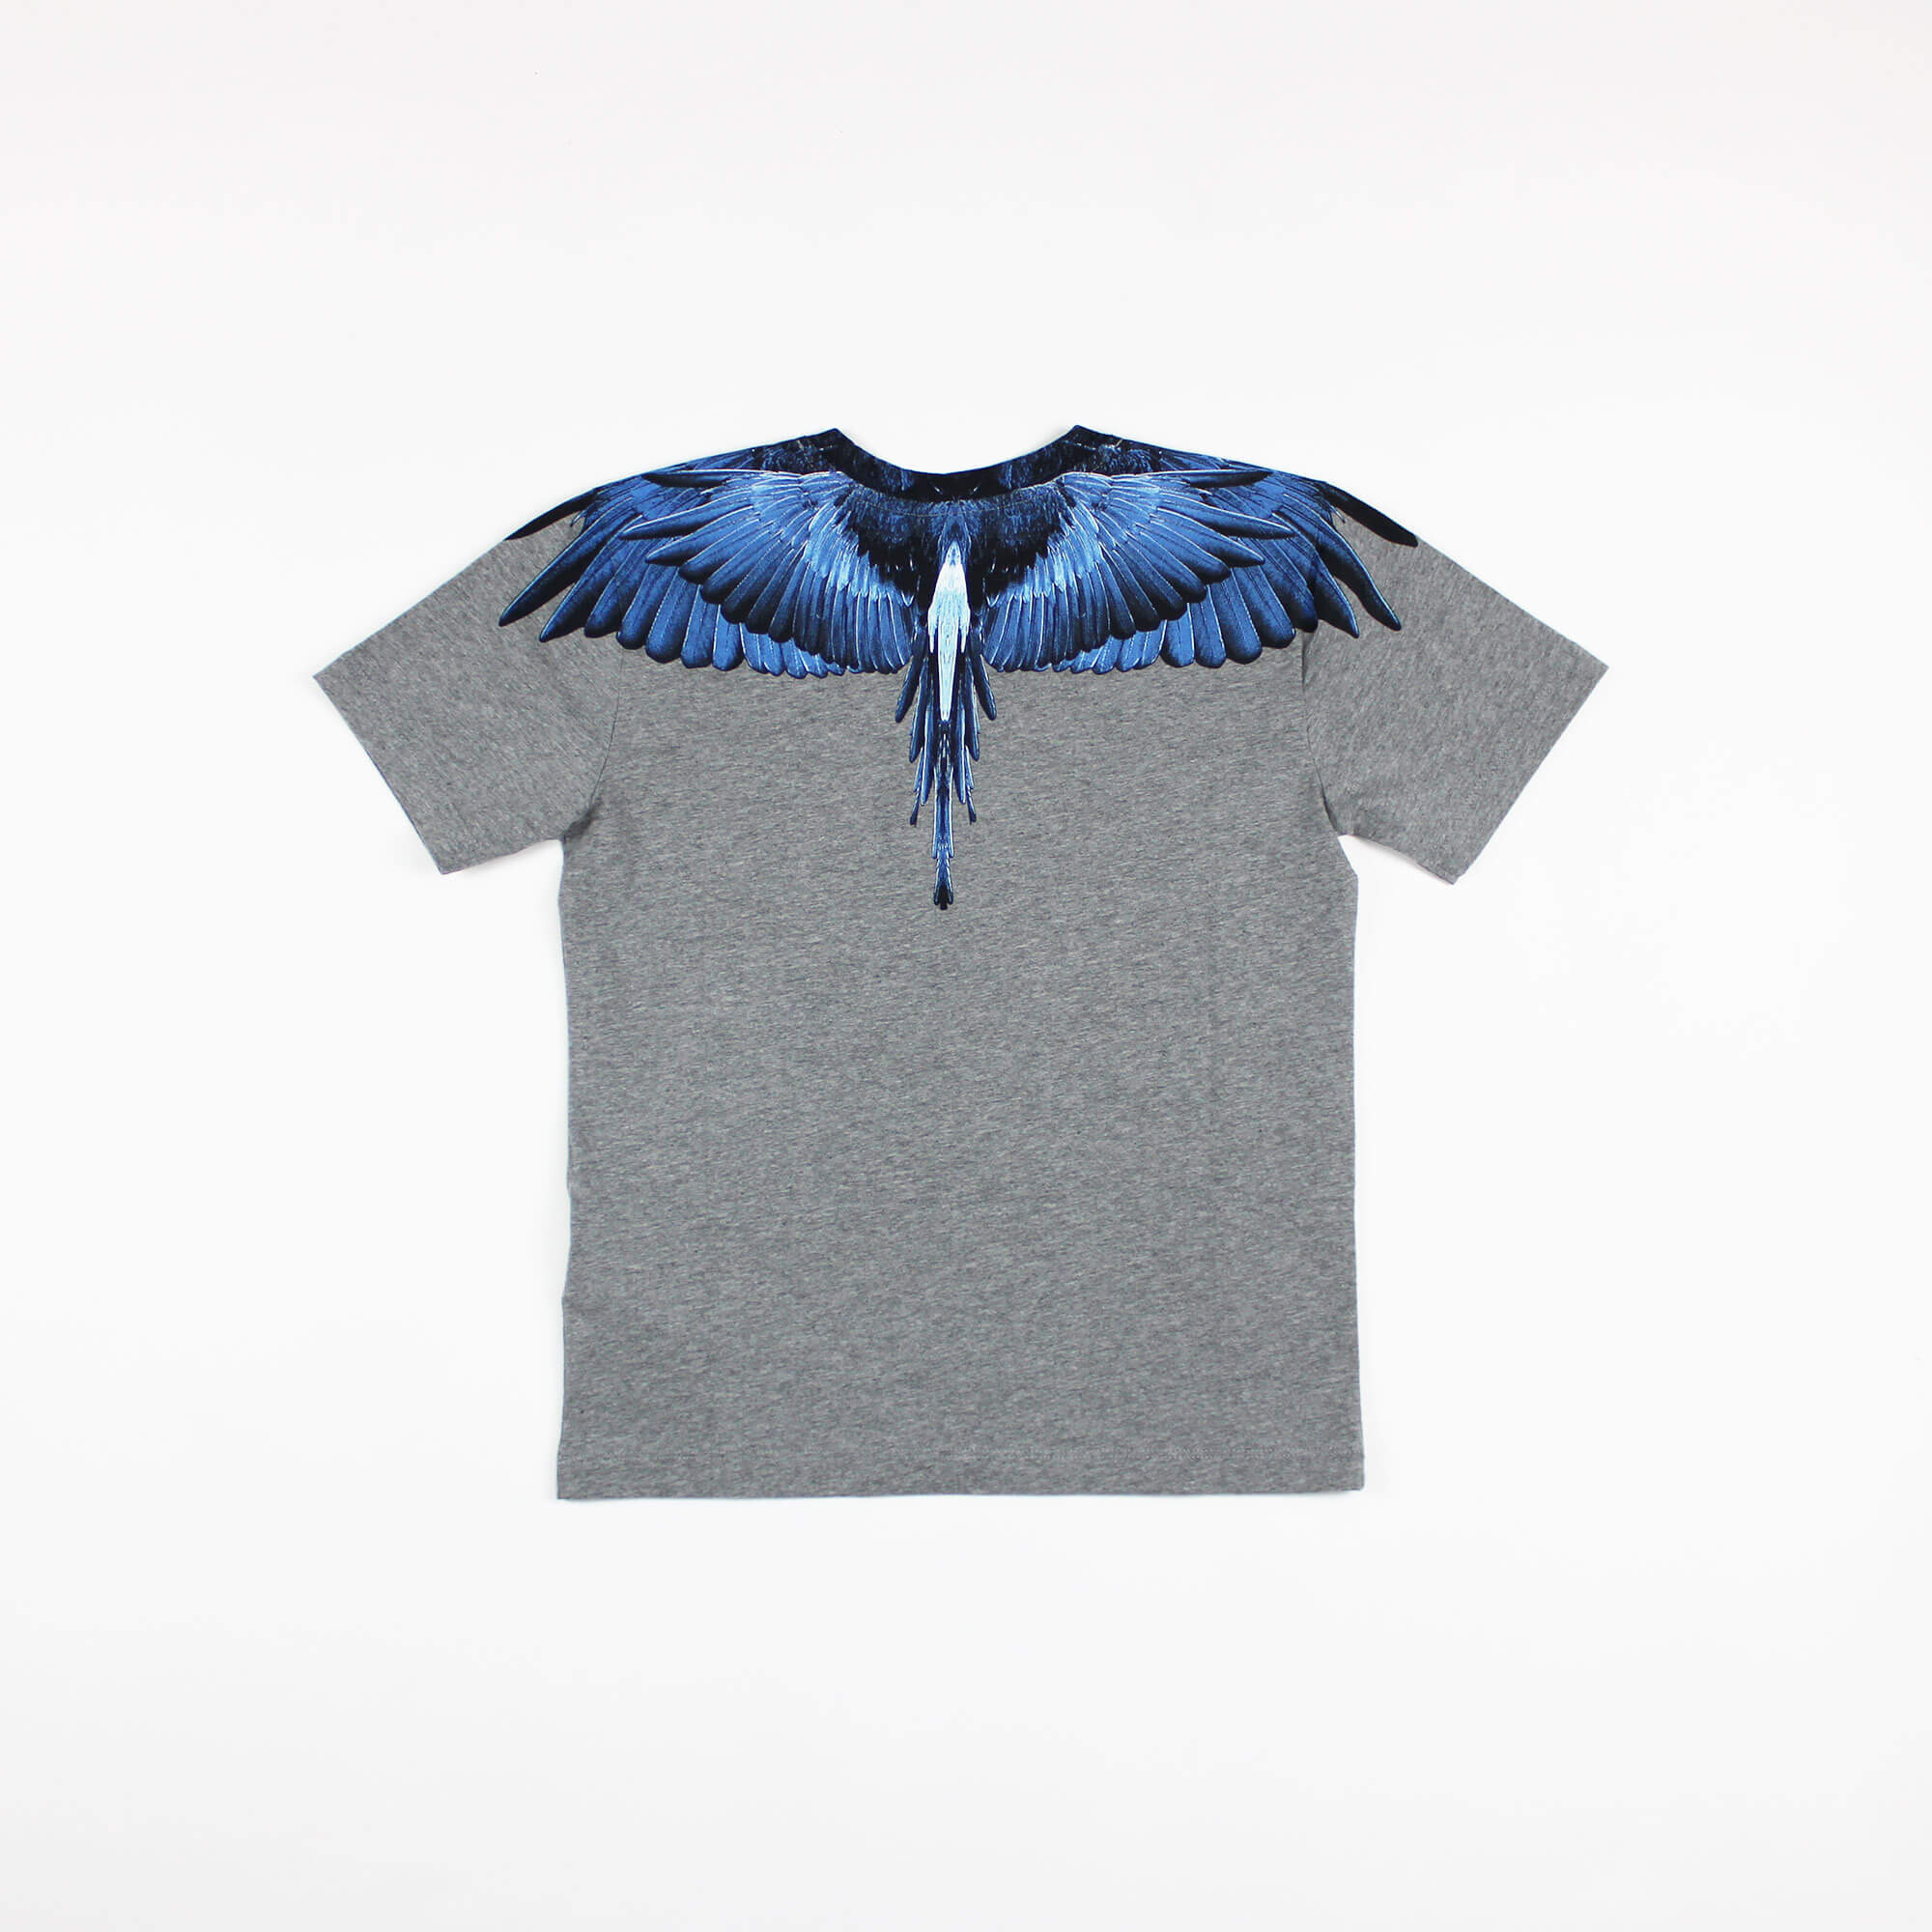 T-shirt blue wings - Grigio